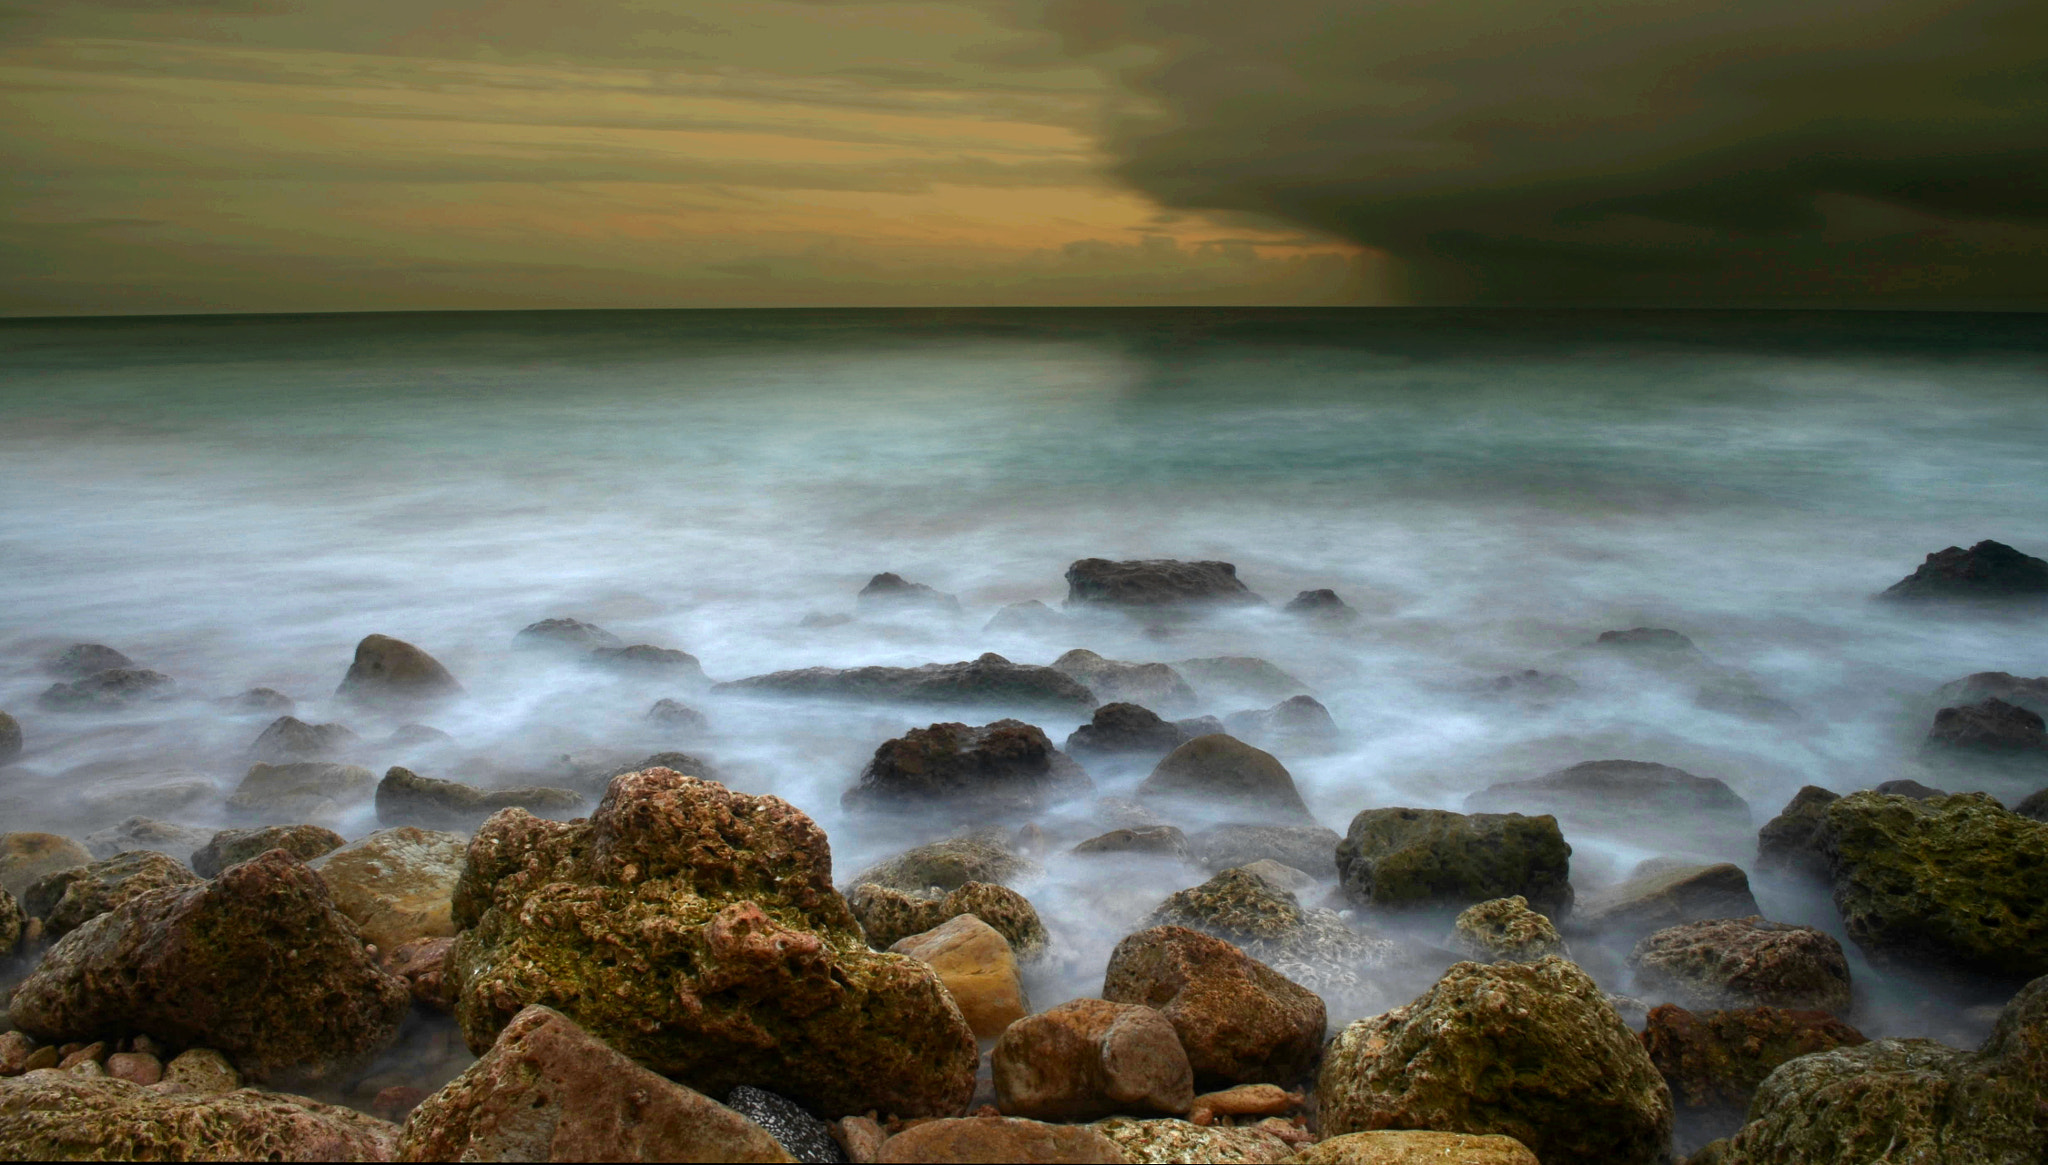 Photograph Storm Brewing by Myles Bennell on 500px